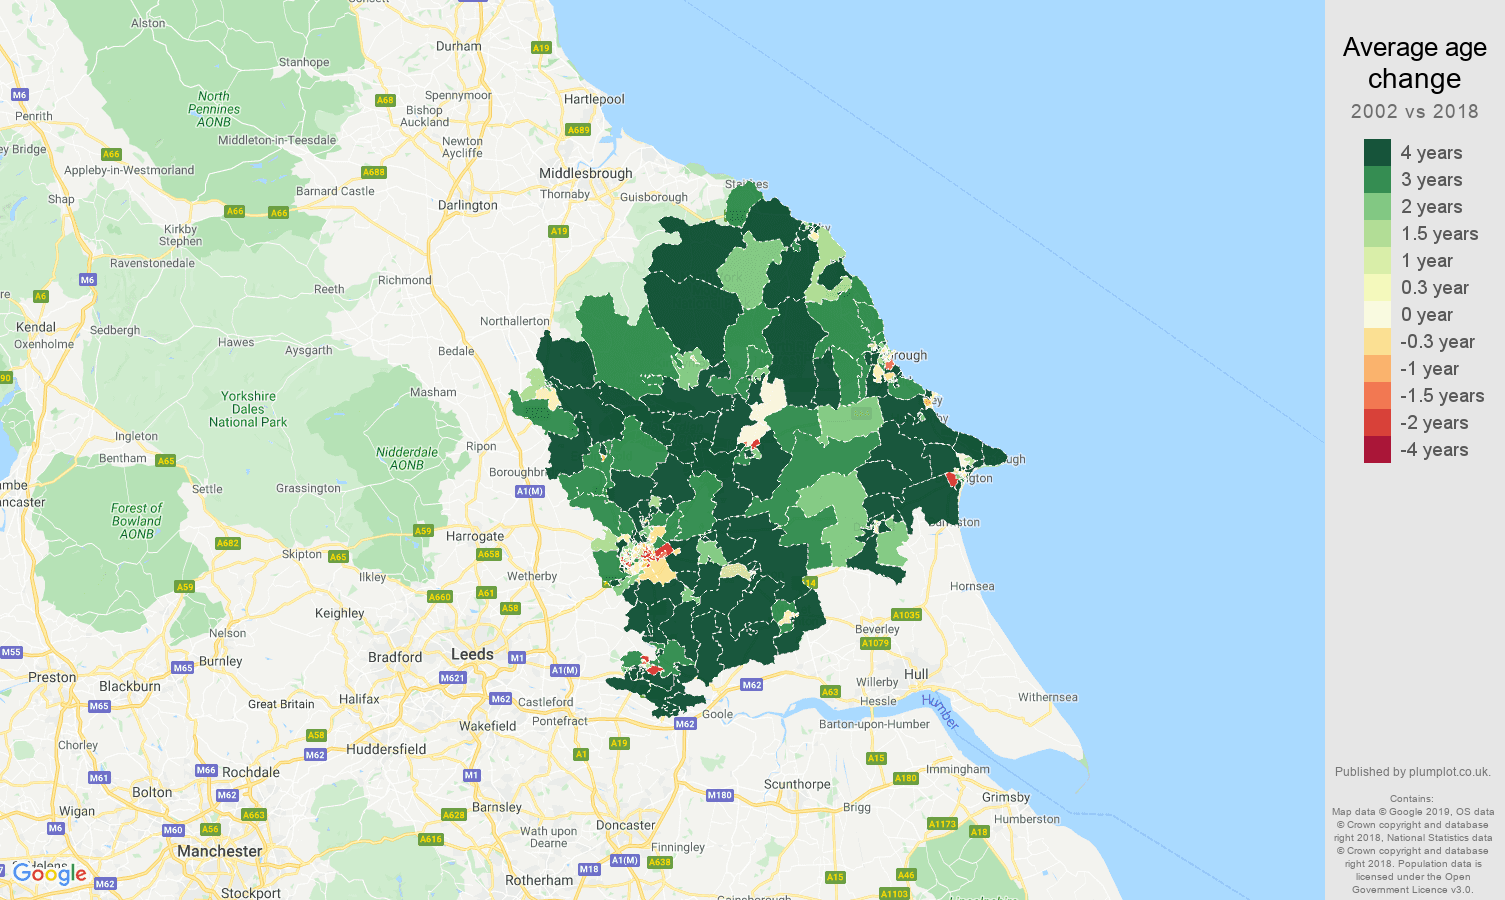 York average age change map